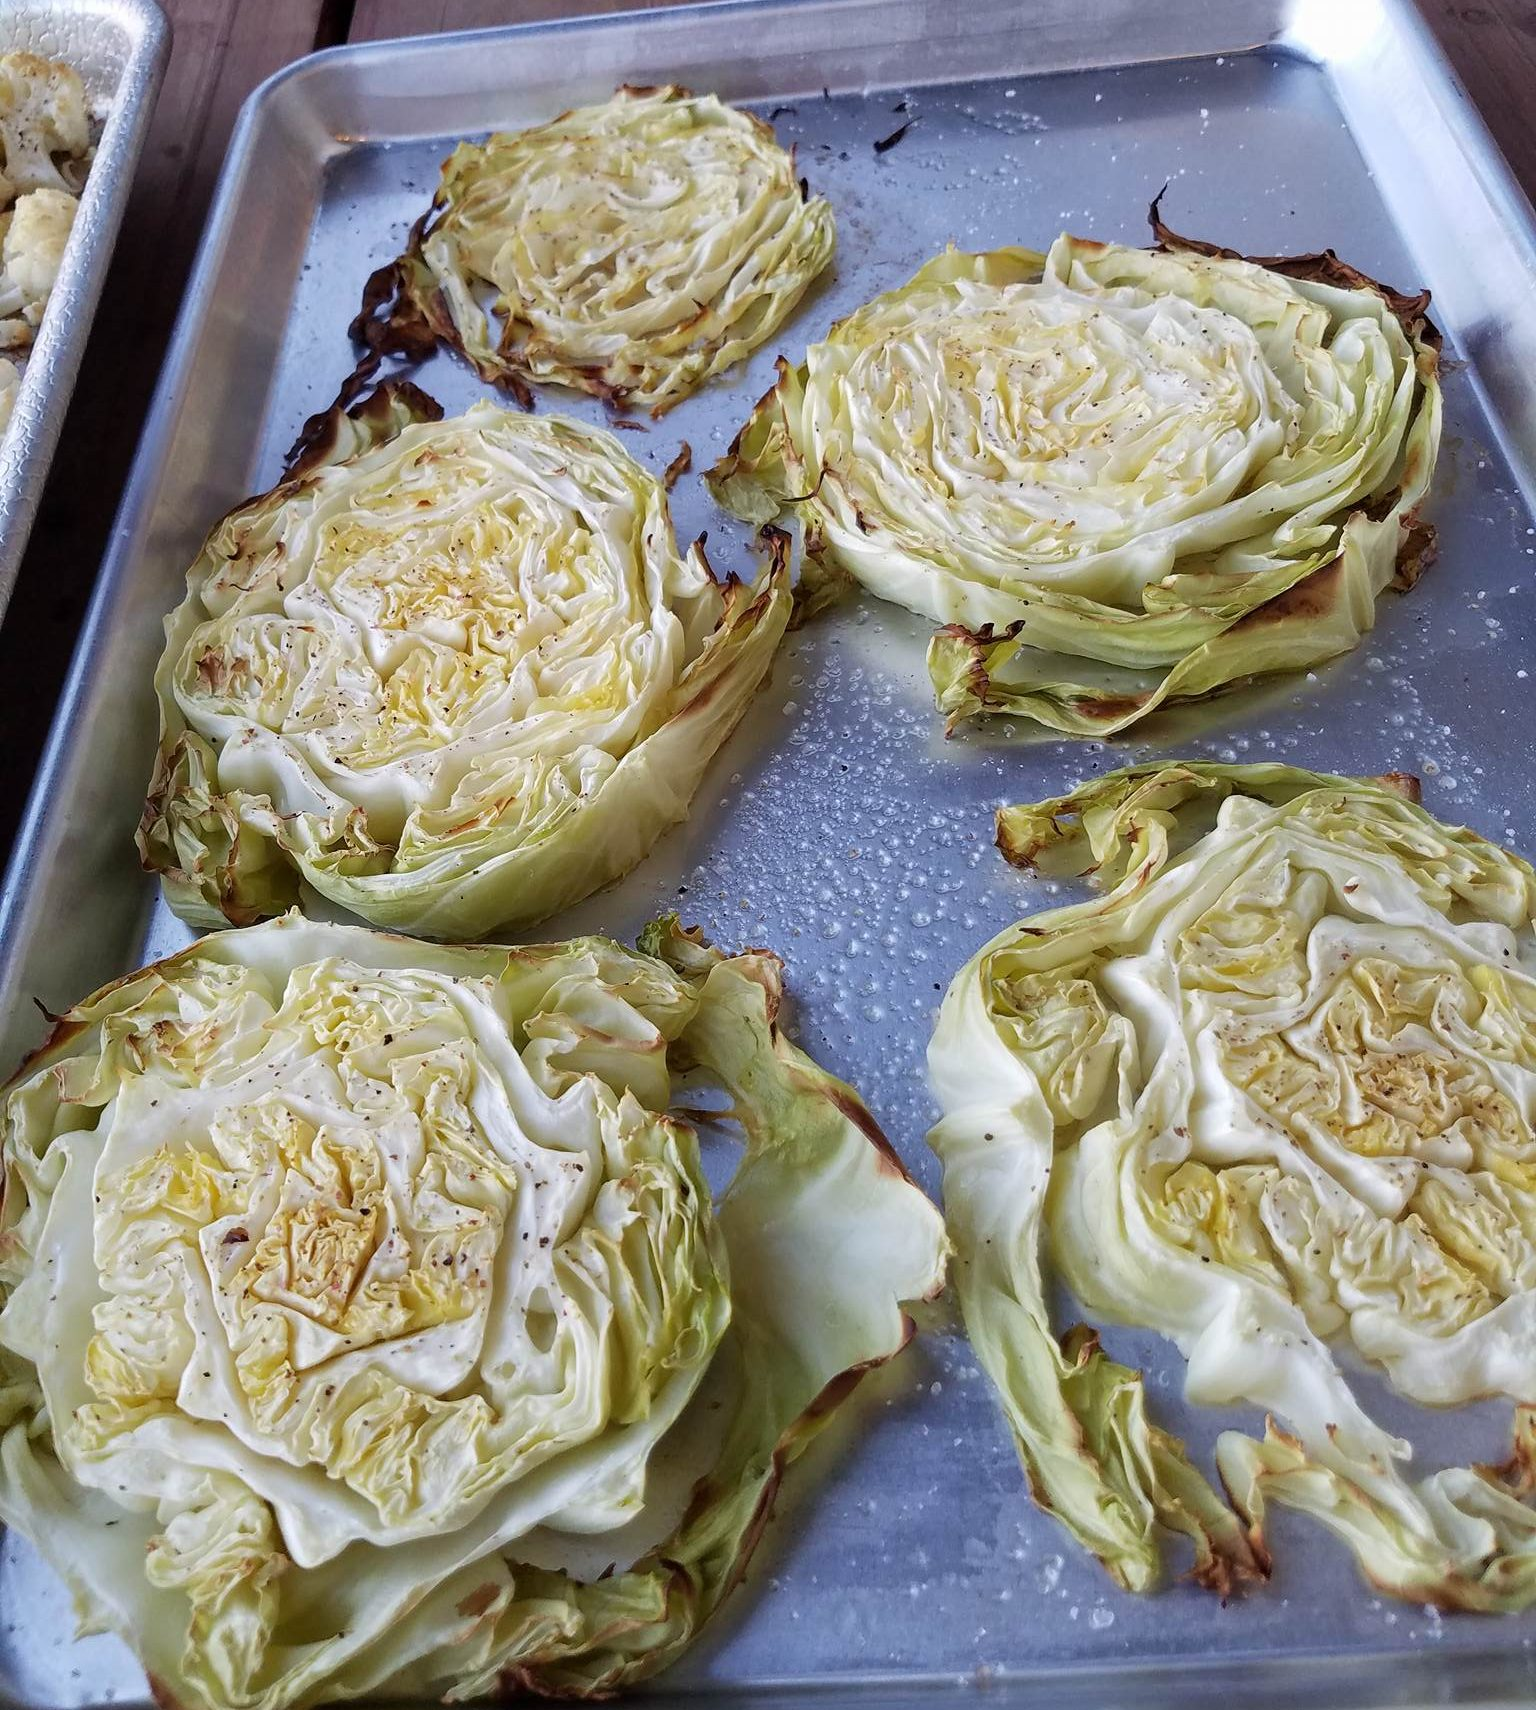 clean-eating-roasted-green-cabbage-wedges http://cleanfoodcrush.com/roasted-green-cabbage-wedges/ http://cleanfoodcrush.com/roasted-green-cabbage-wedges/